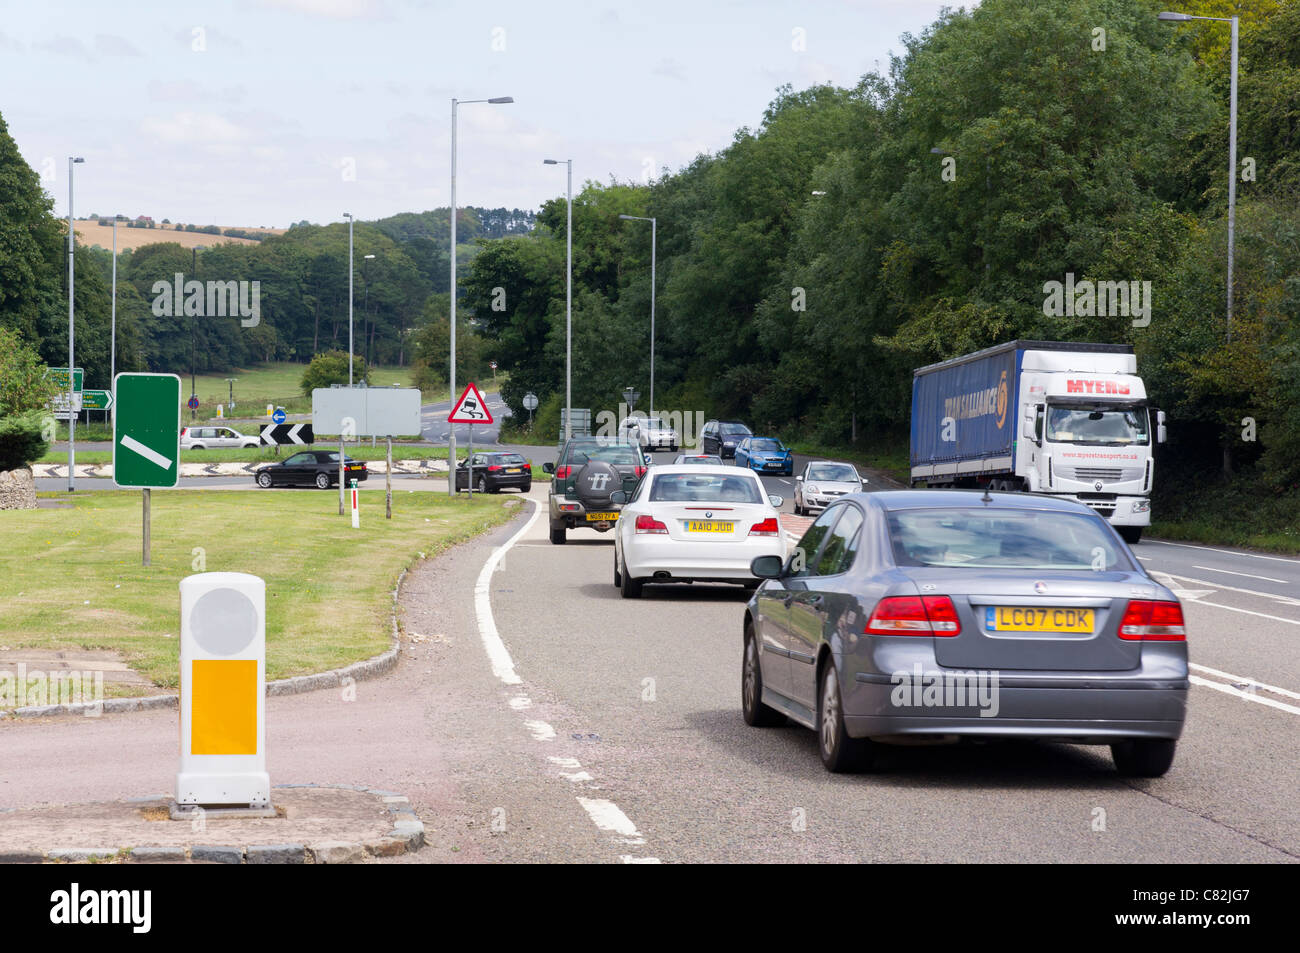 Traffic congestion at the air balloon roundabout - Stock Image